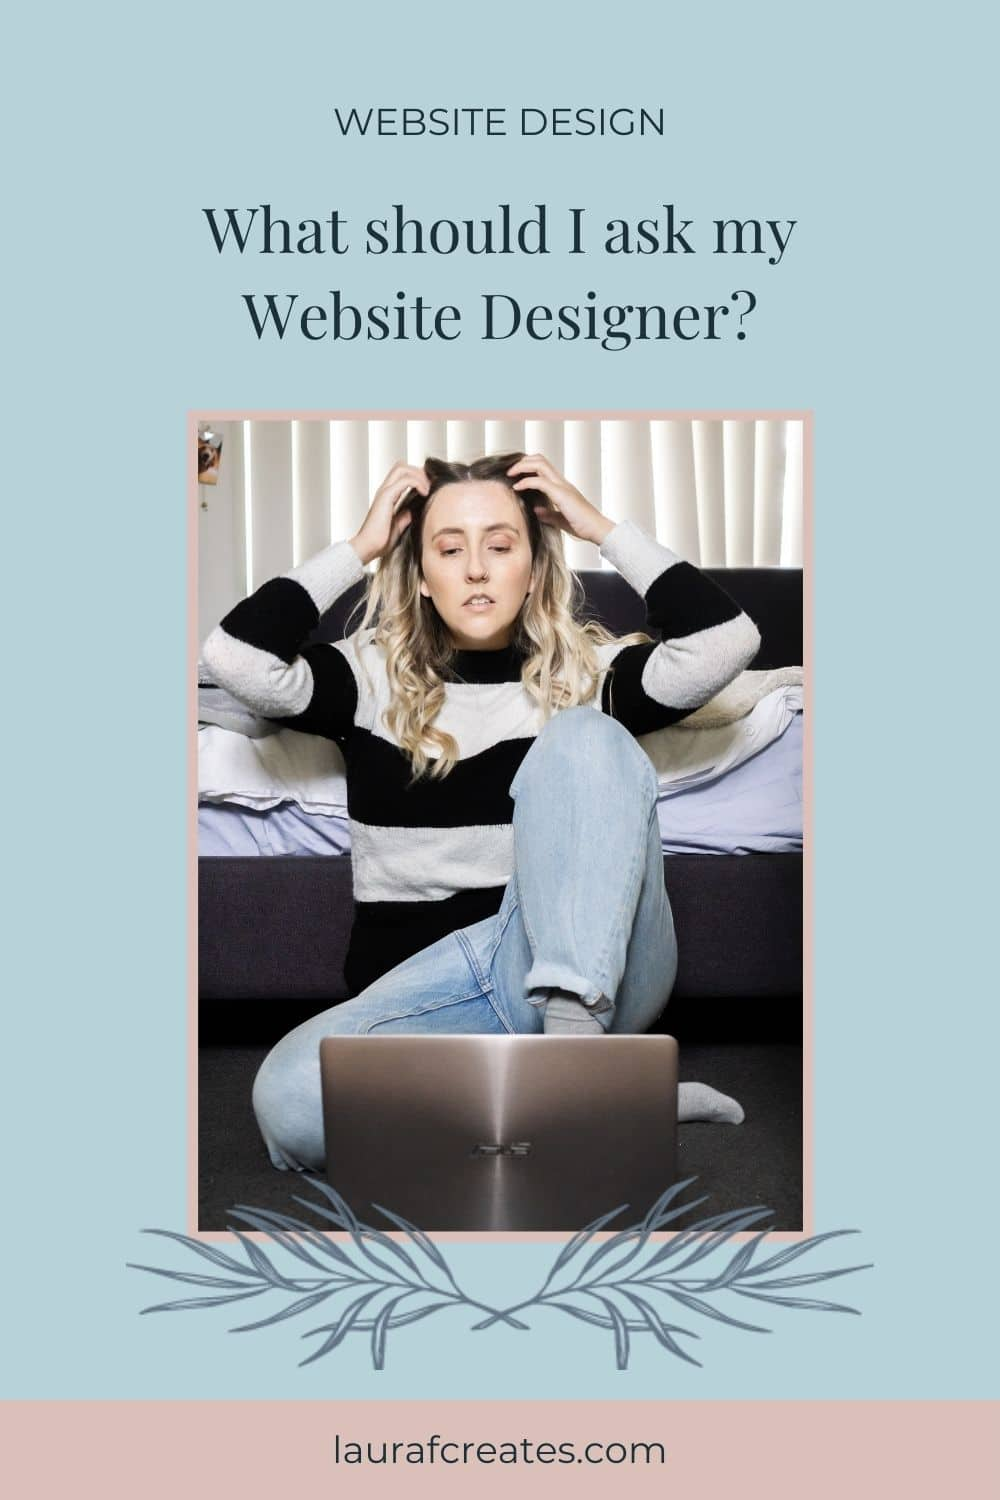 What Questions Should I ask my website designer?